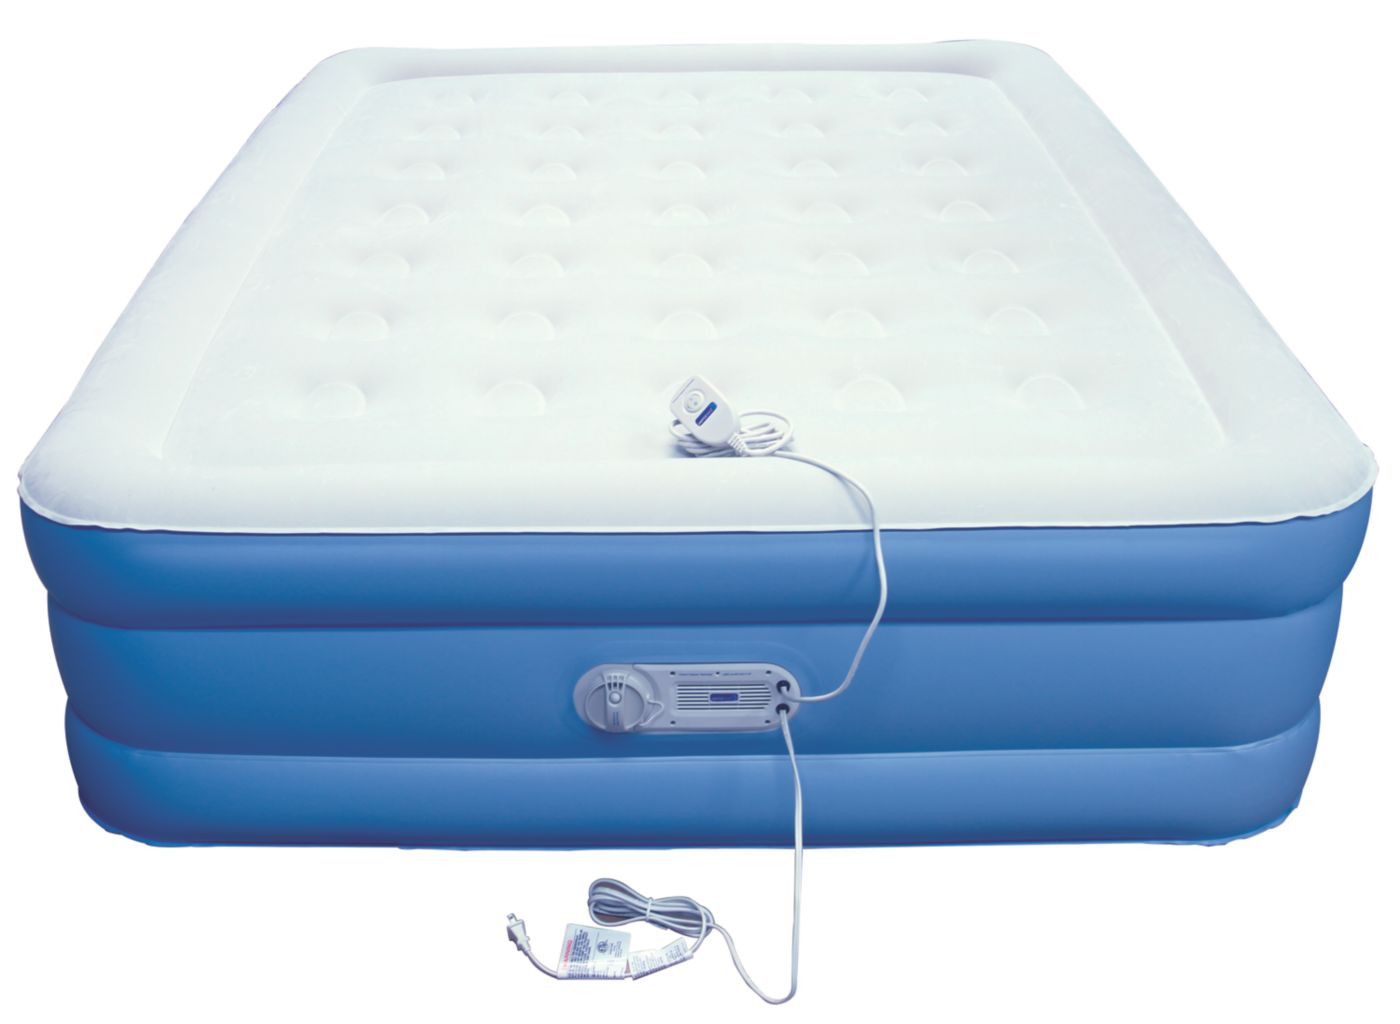 Camping Aero Bed Perfect Pressure Air Mattress Queen Aerobed